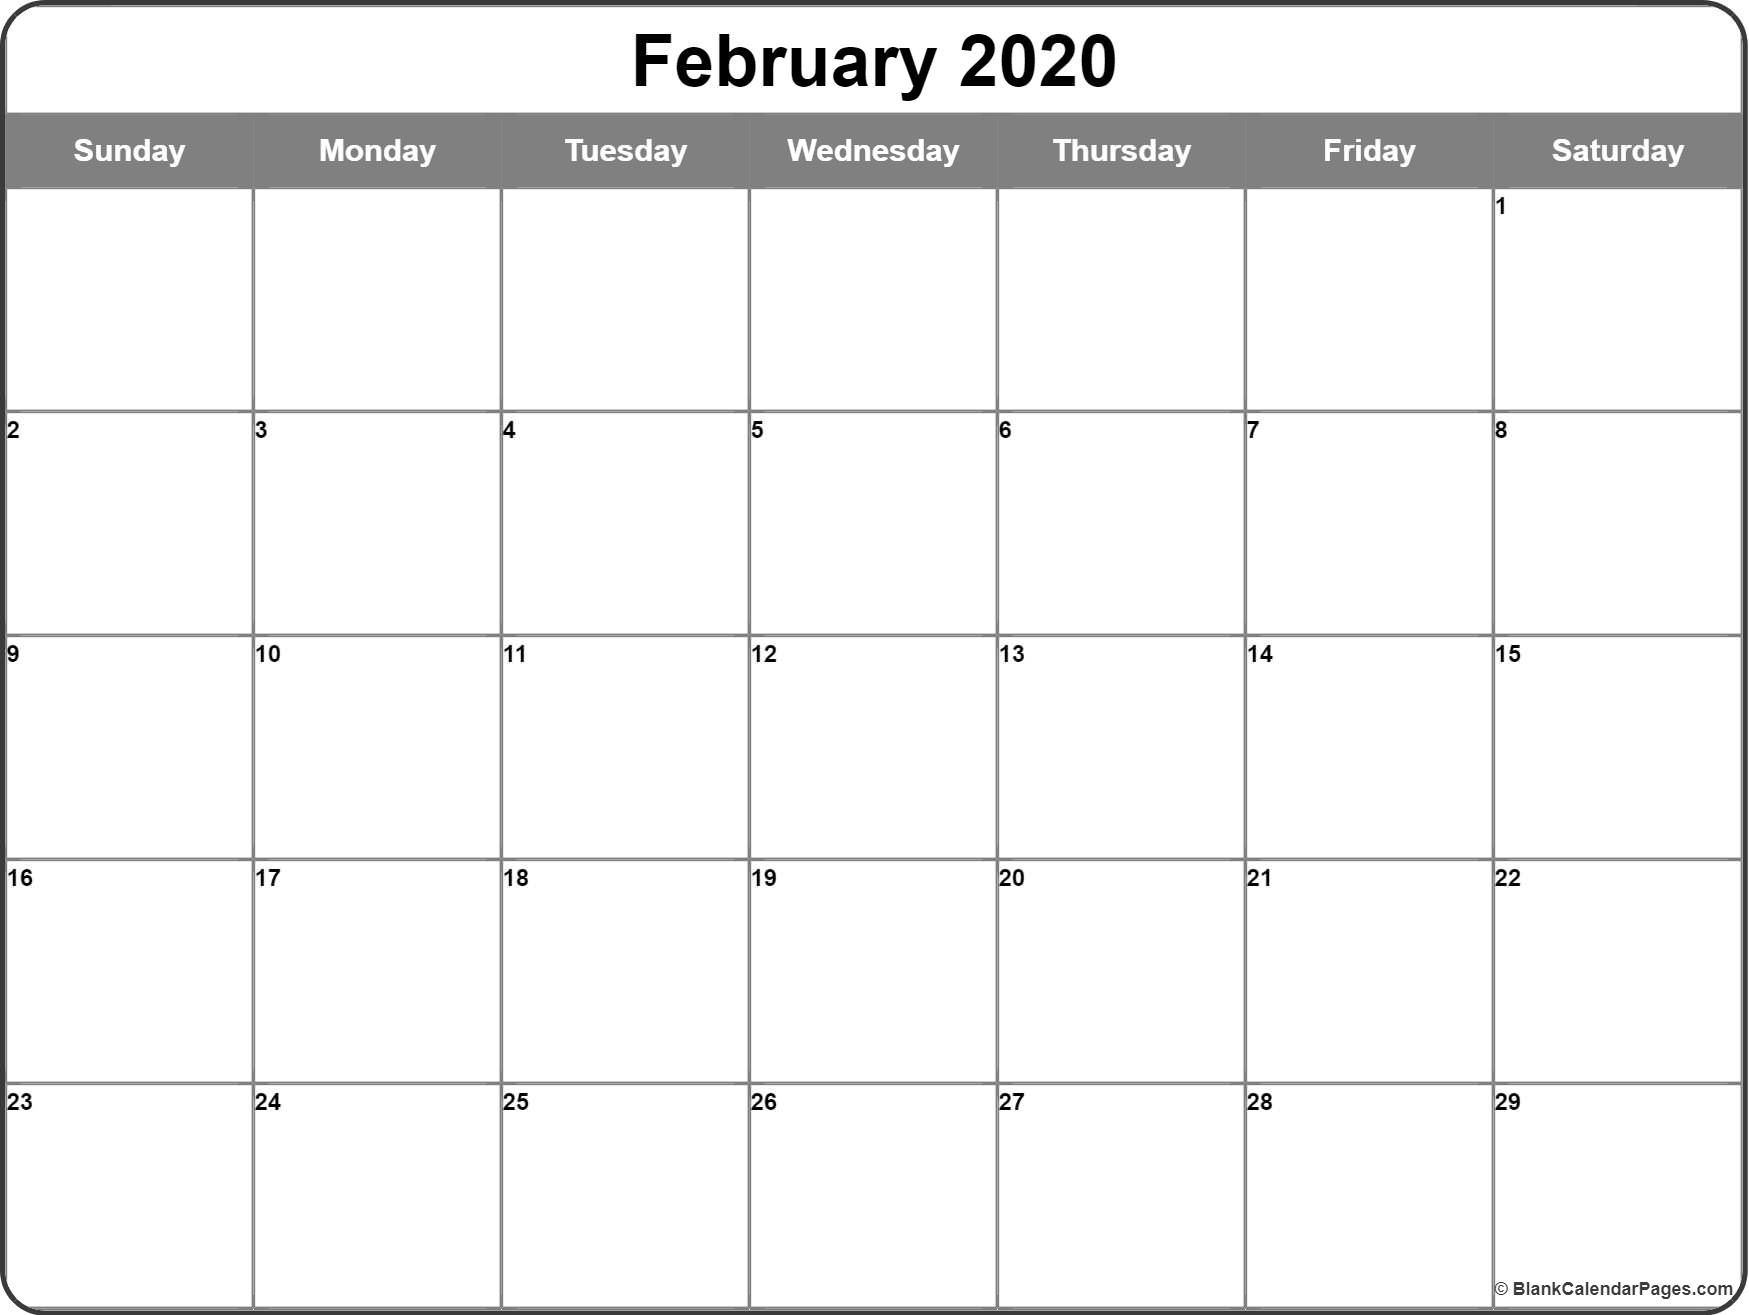 February 2020 Calendar | Free Printable Monthly Calendars regarding Free Printable Calander 2020 Victoria Wiht Spaces To Write